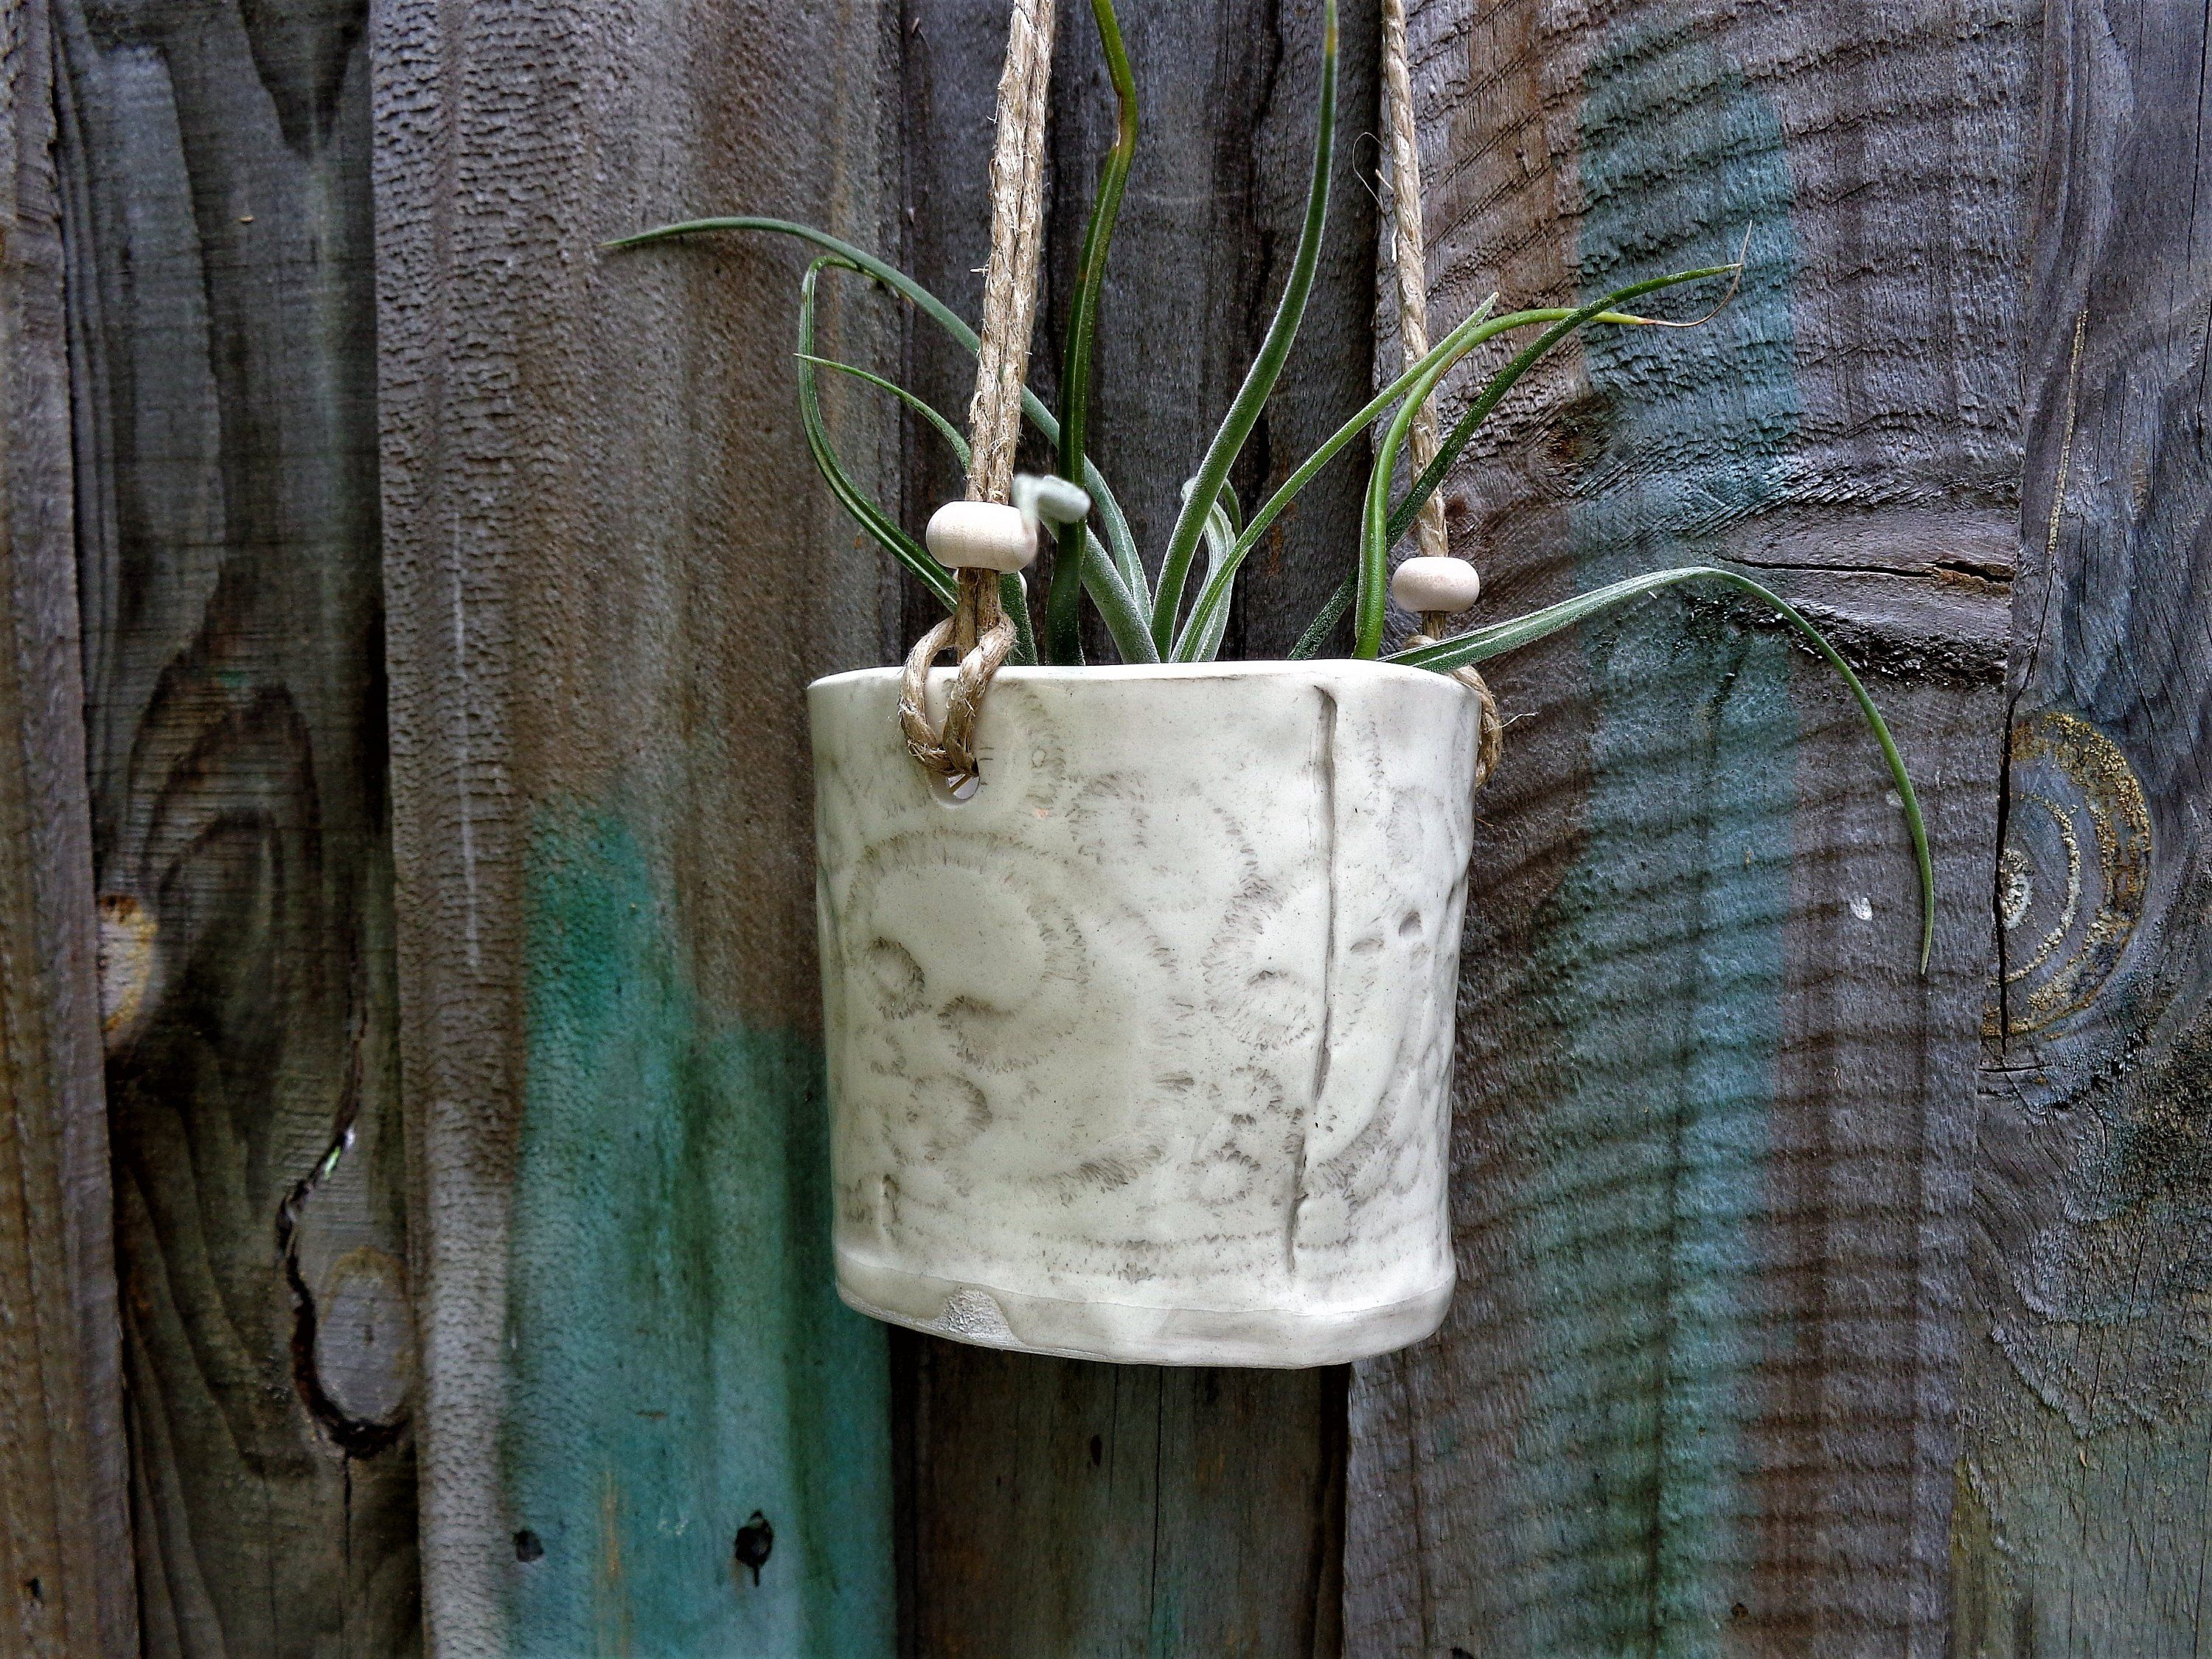 Small White Hanging Planter Rustic Farmhouse Lace Textured Indoor Outdoor Hanging Succulent Planter Pot Home Garden Patio Verandah Decor Hanging Planters Planter Pots Planters